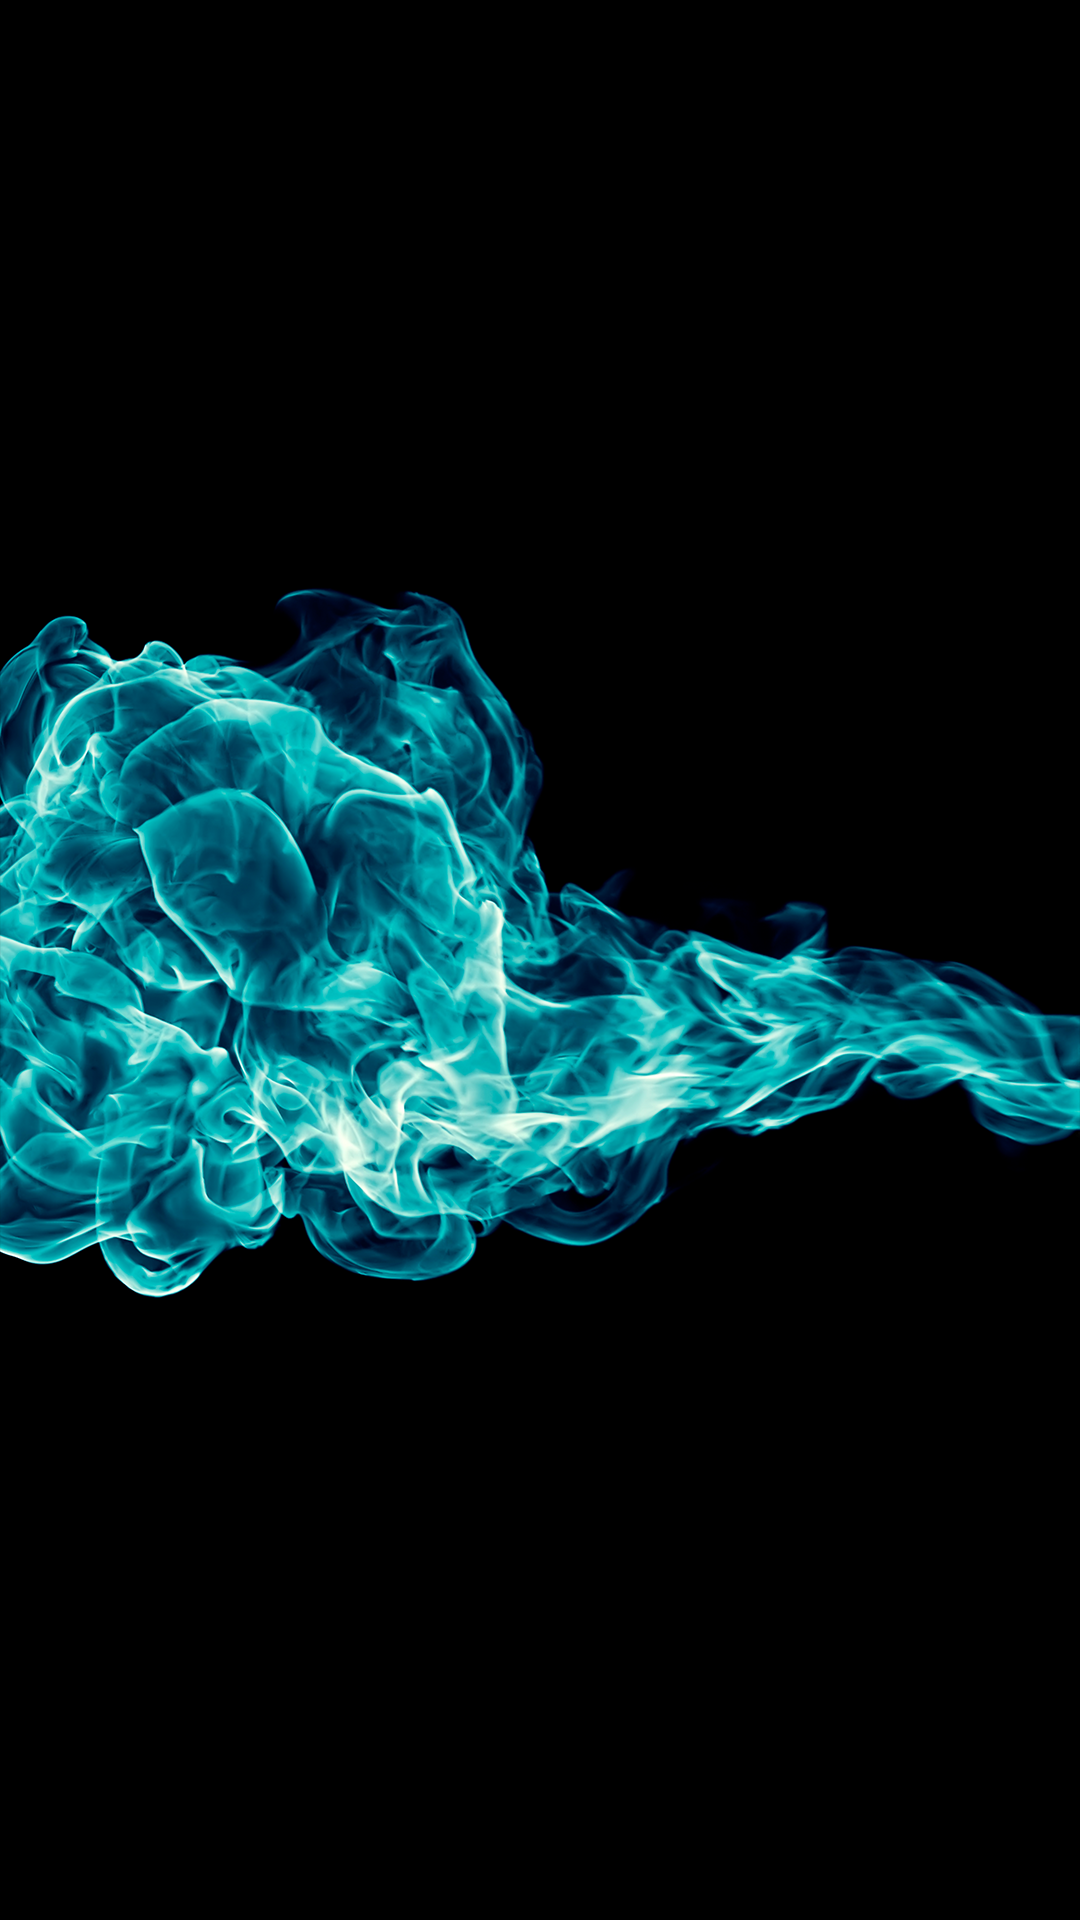 Ultra hd blue fire wallpaper for your mobile phone 0042 - Blue fire wallpaper ...